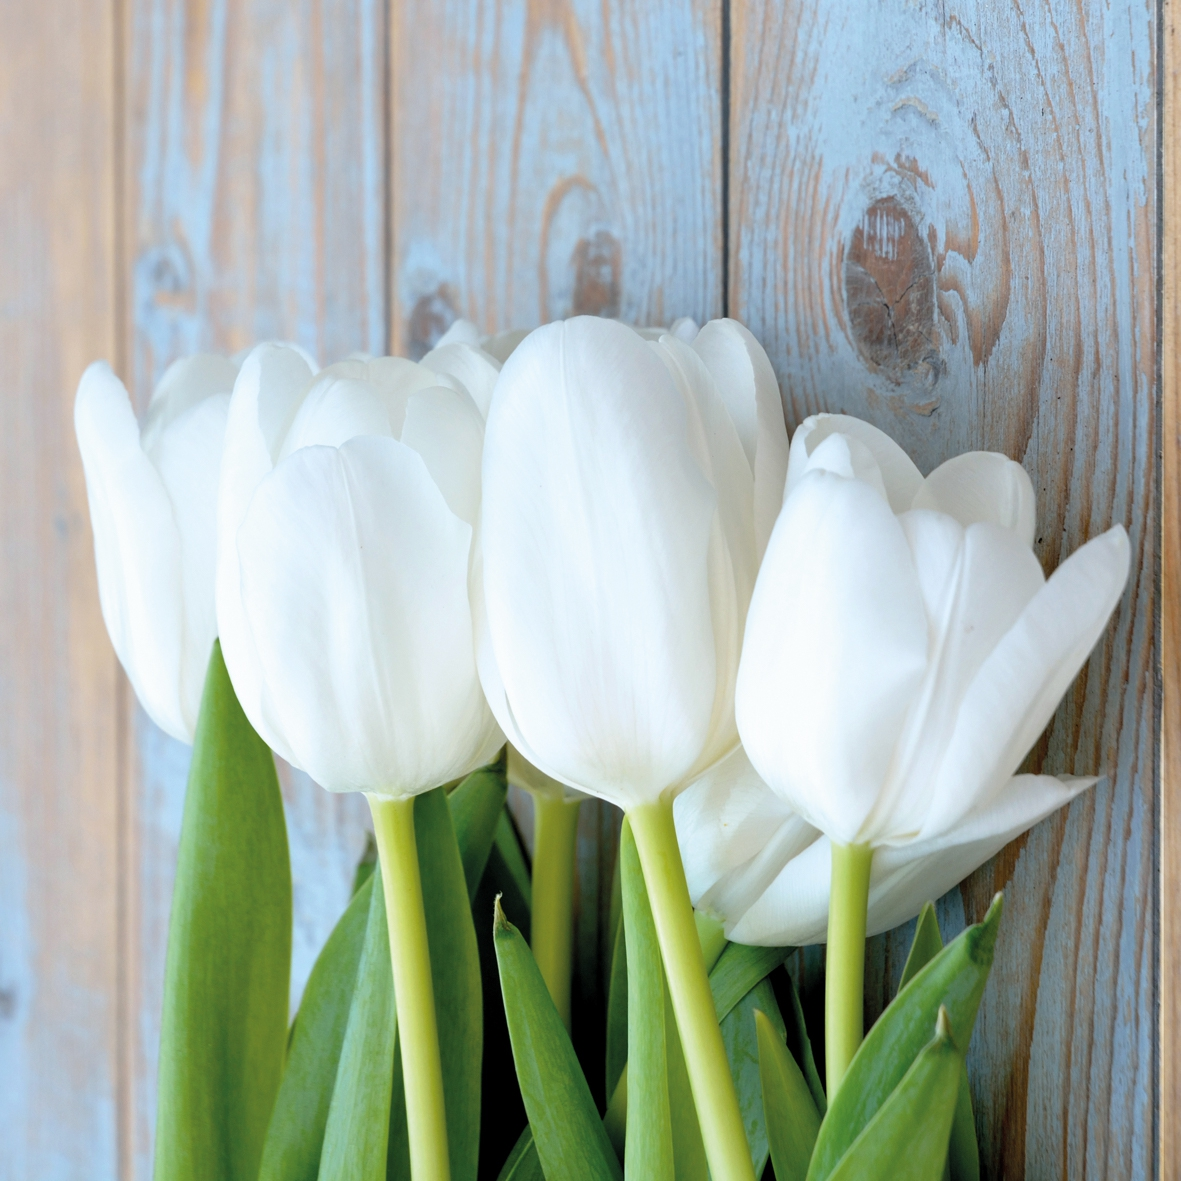 Servietten Weisse Tulpen White Tulips On Wood